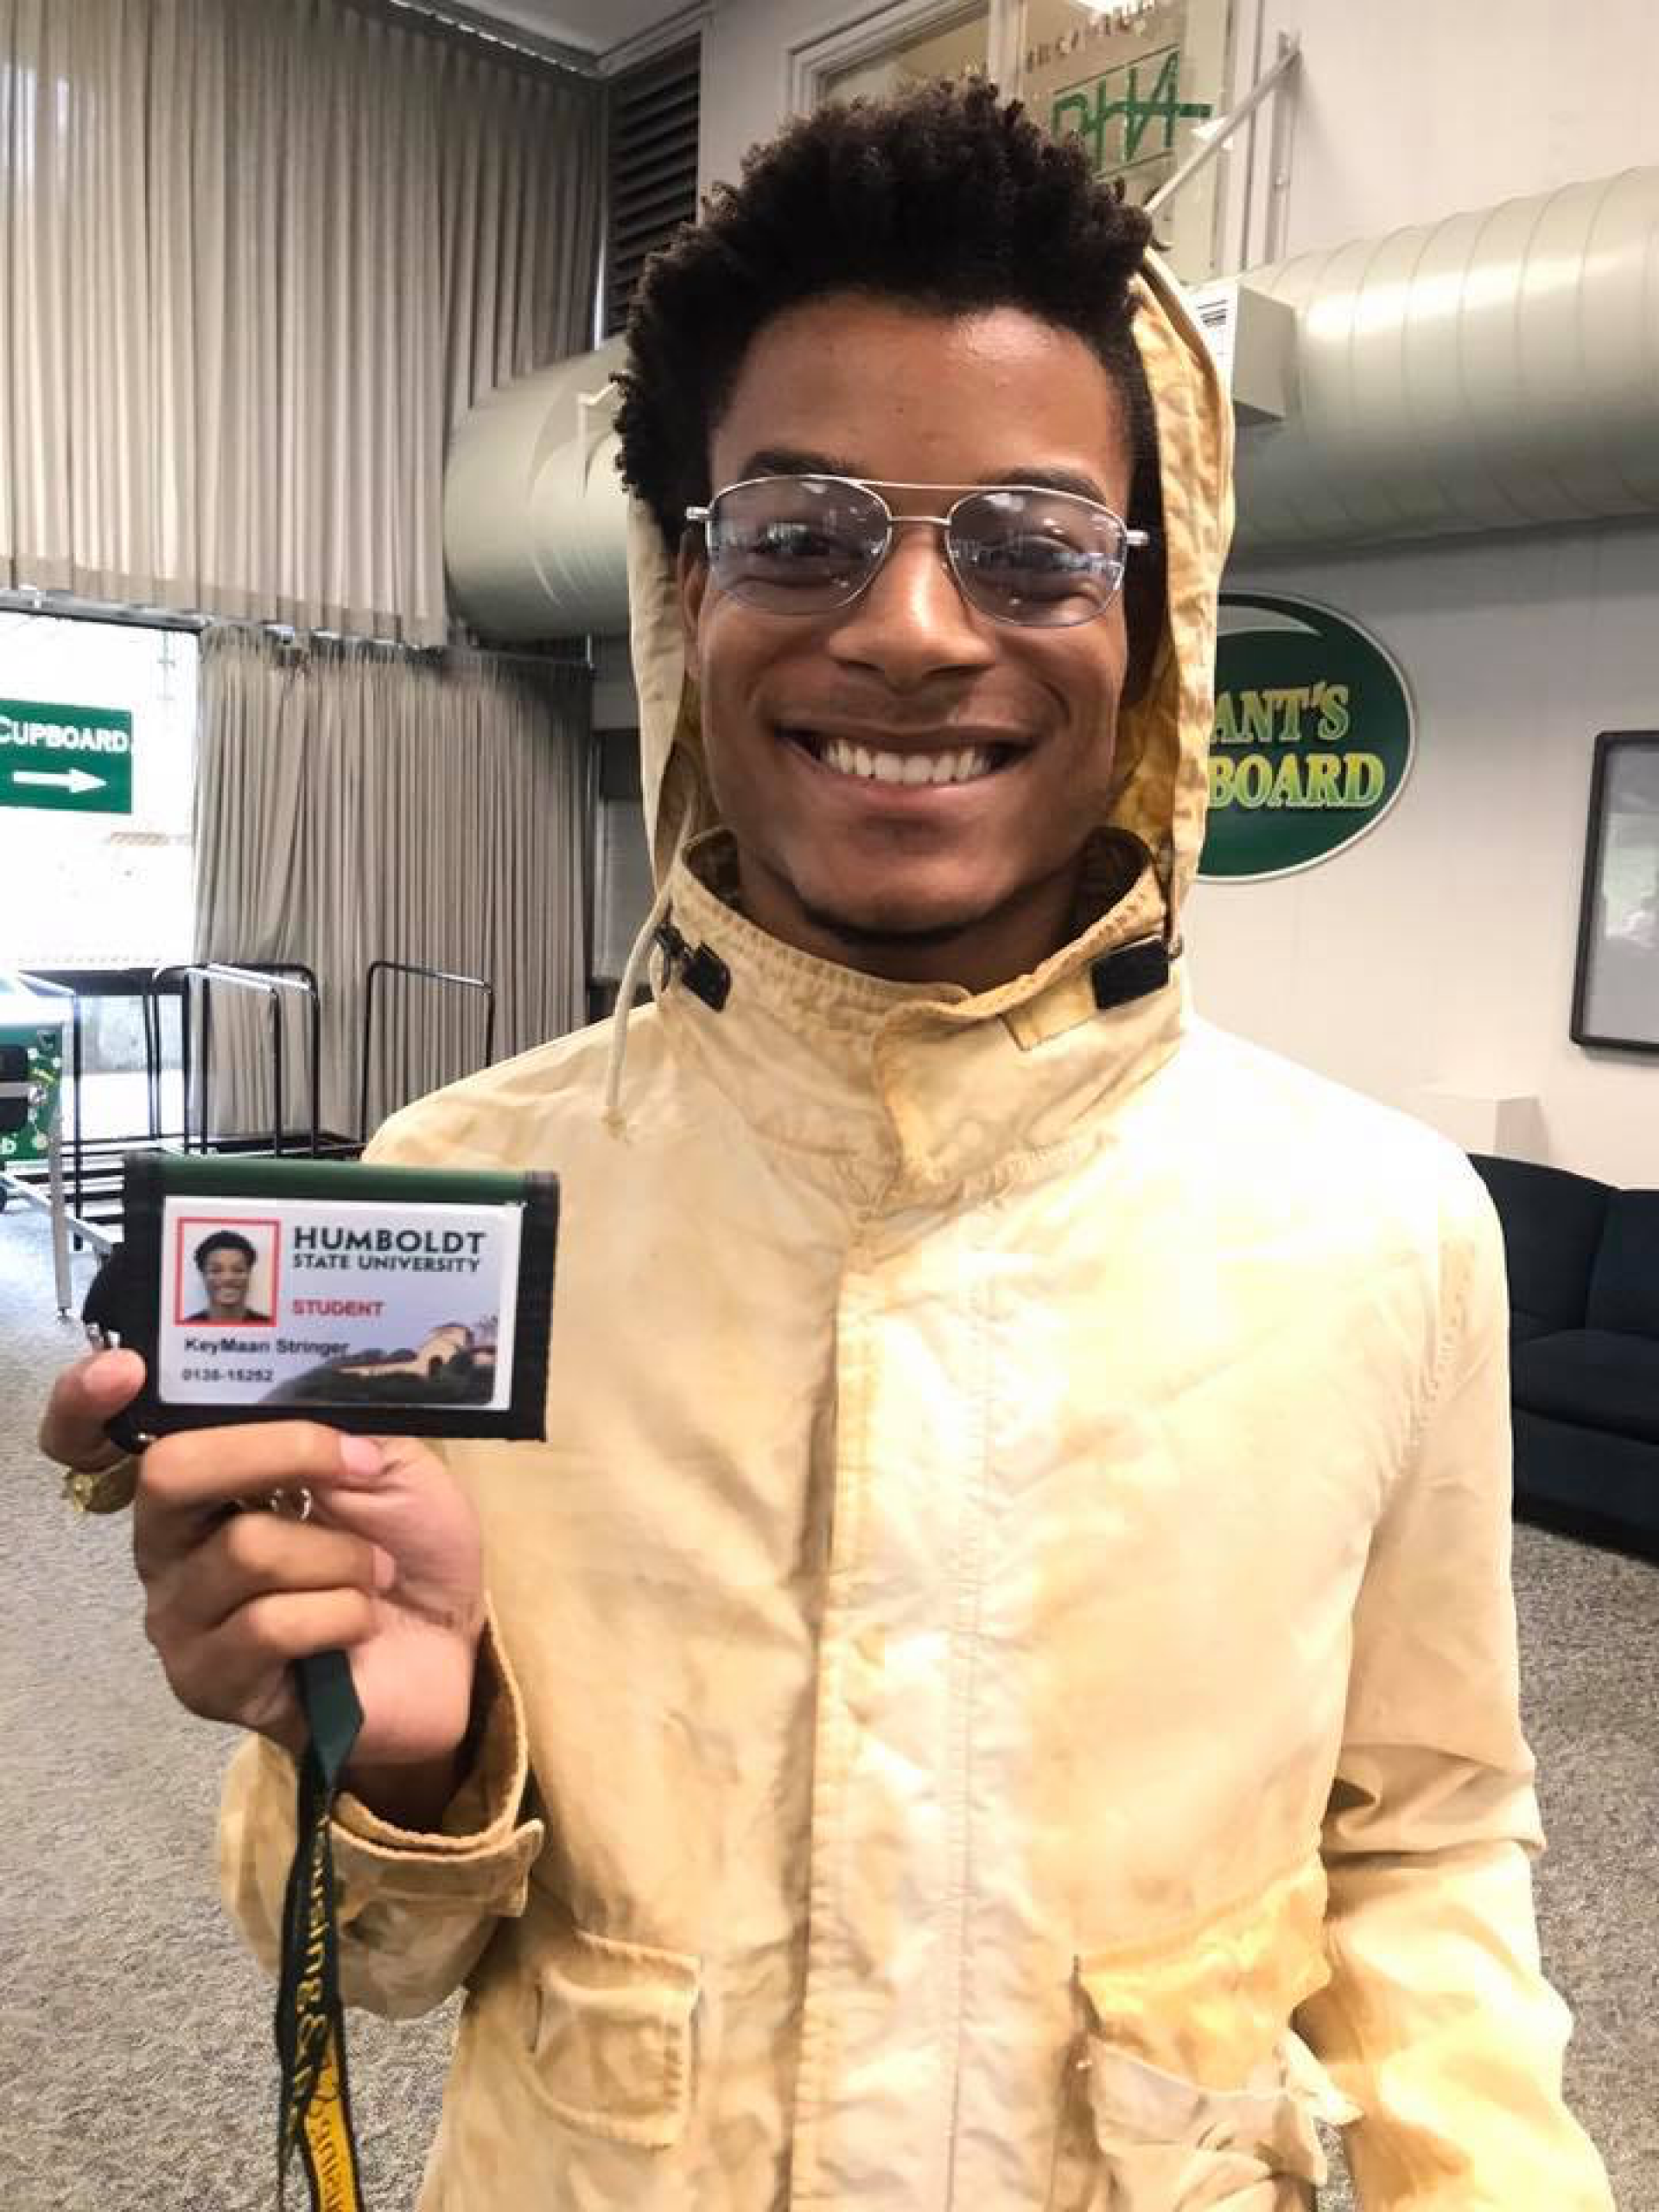 HSU freshman Keymaan Stringer holding his HSU ID near the Giant's Cupboard. Keymann was swept to sea by a rogue wave on Oct. 29. | Photo courtesy of Corliss P Bennett.